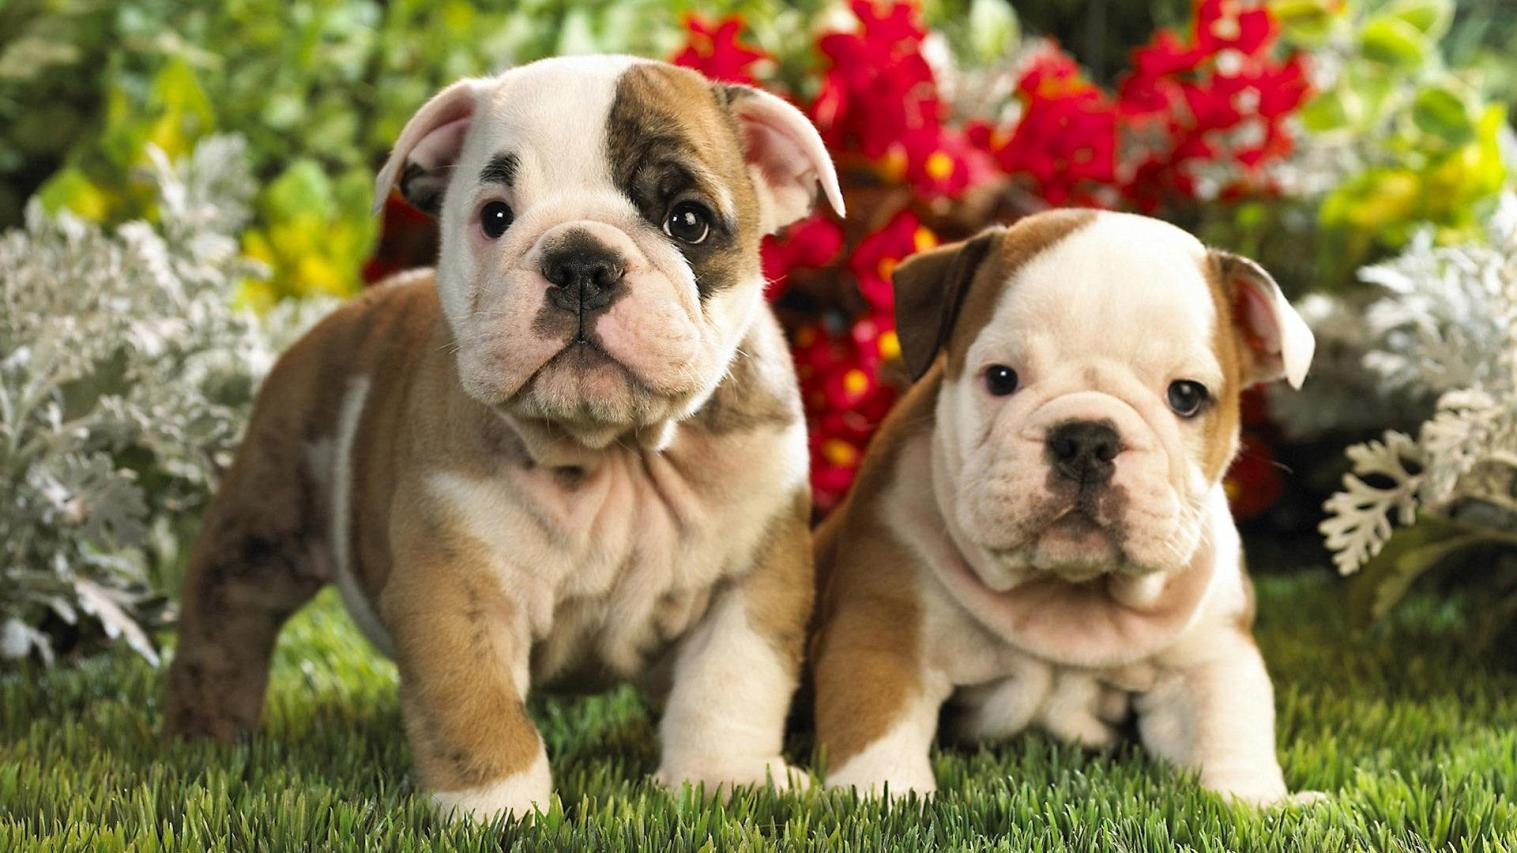 cute puppies wallpaper   8512   The Wondrous Pics 1517x853